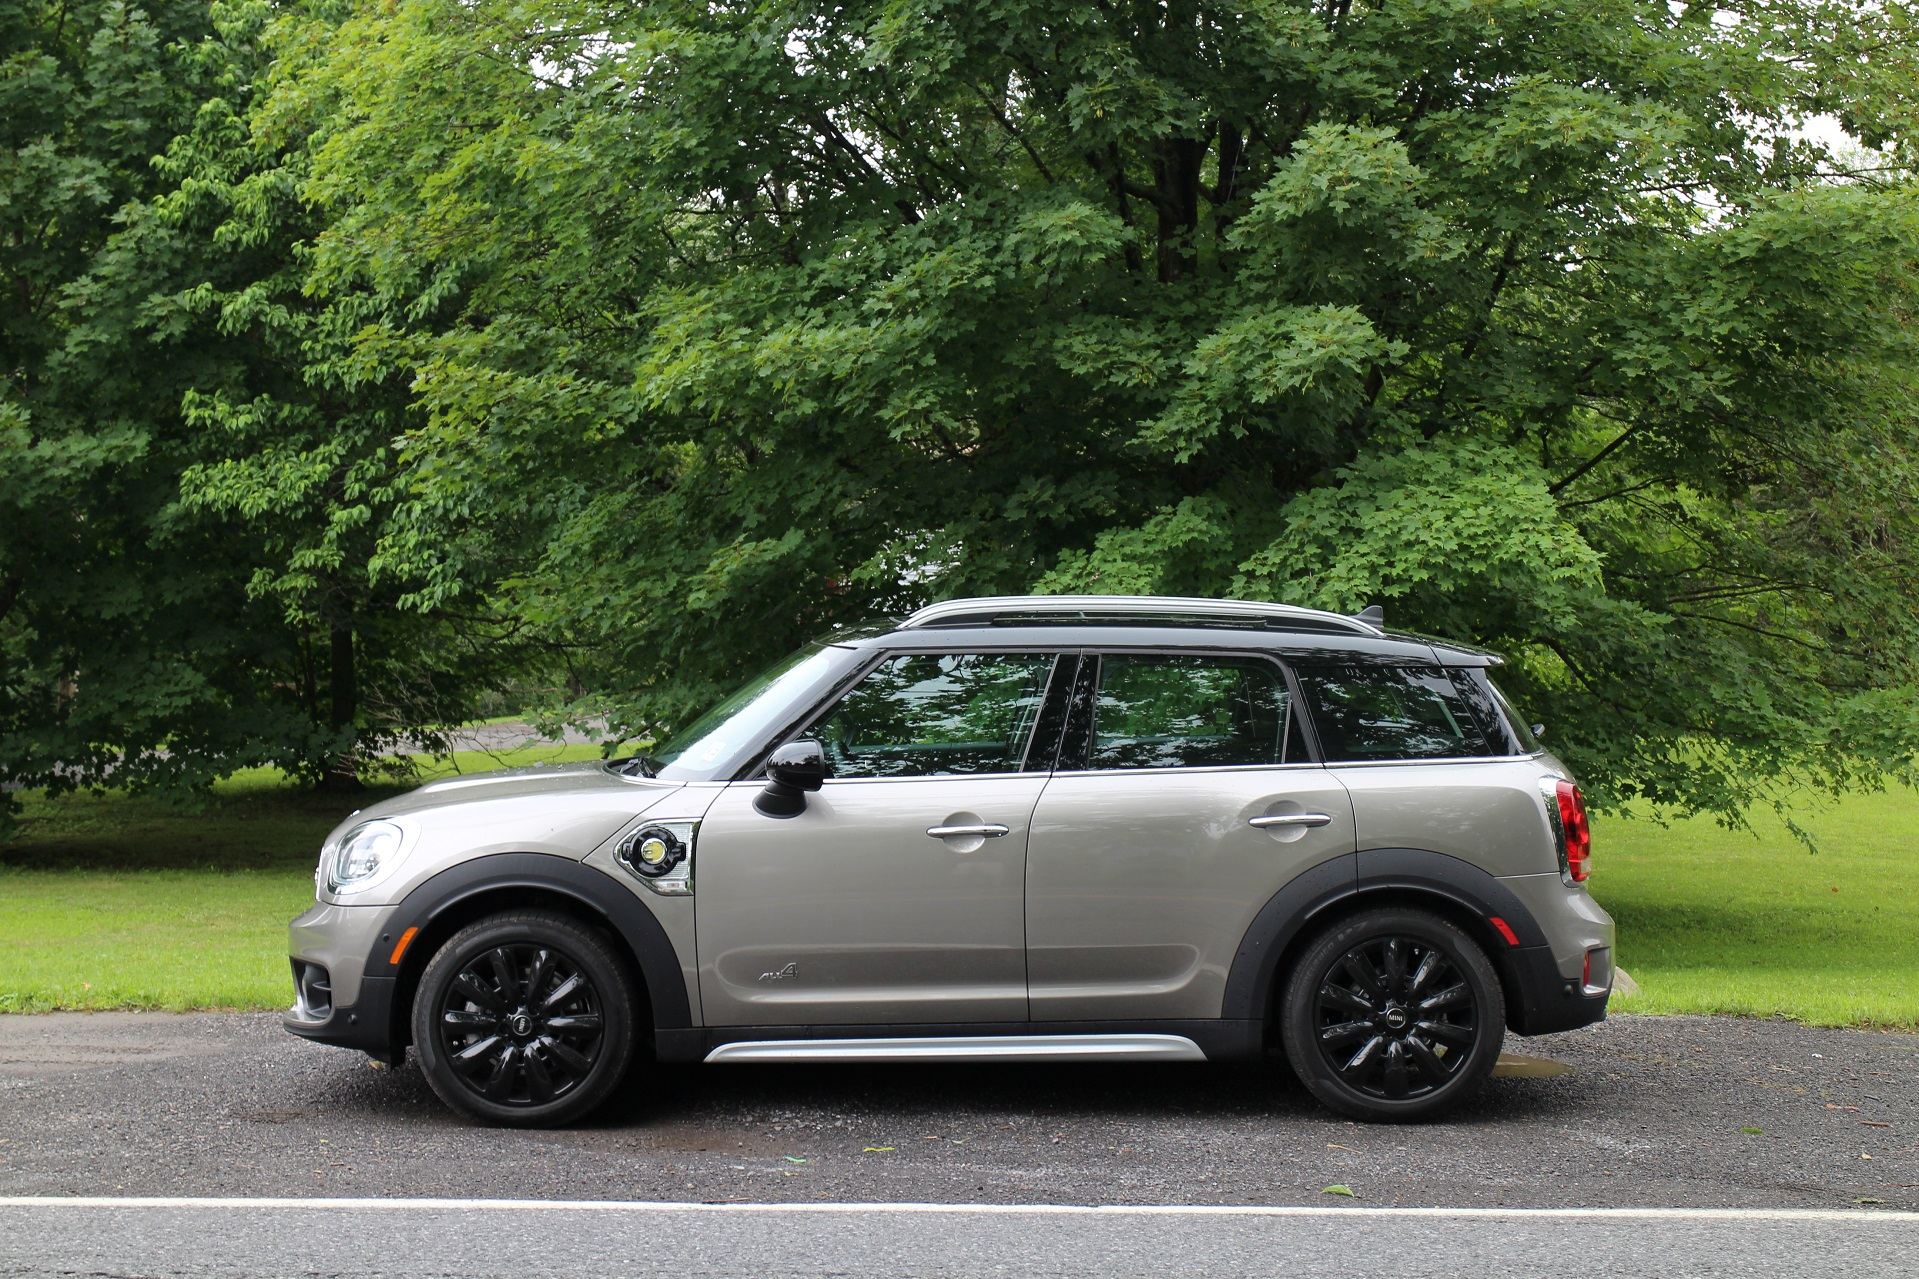 2018 mini cooper s e countryman all4 review of plug in. Black Bedroom Furniture Sets. Home Design Ideas